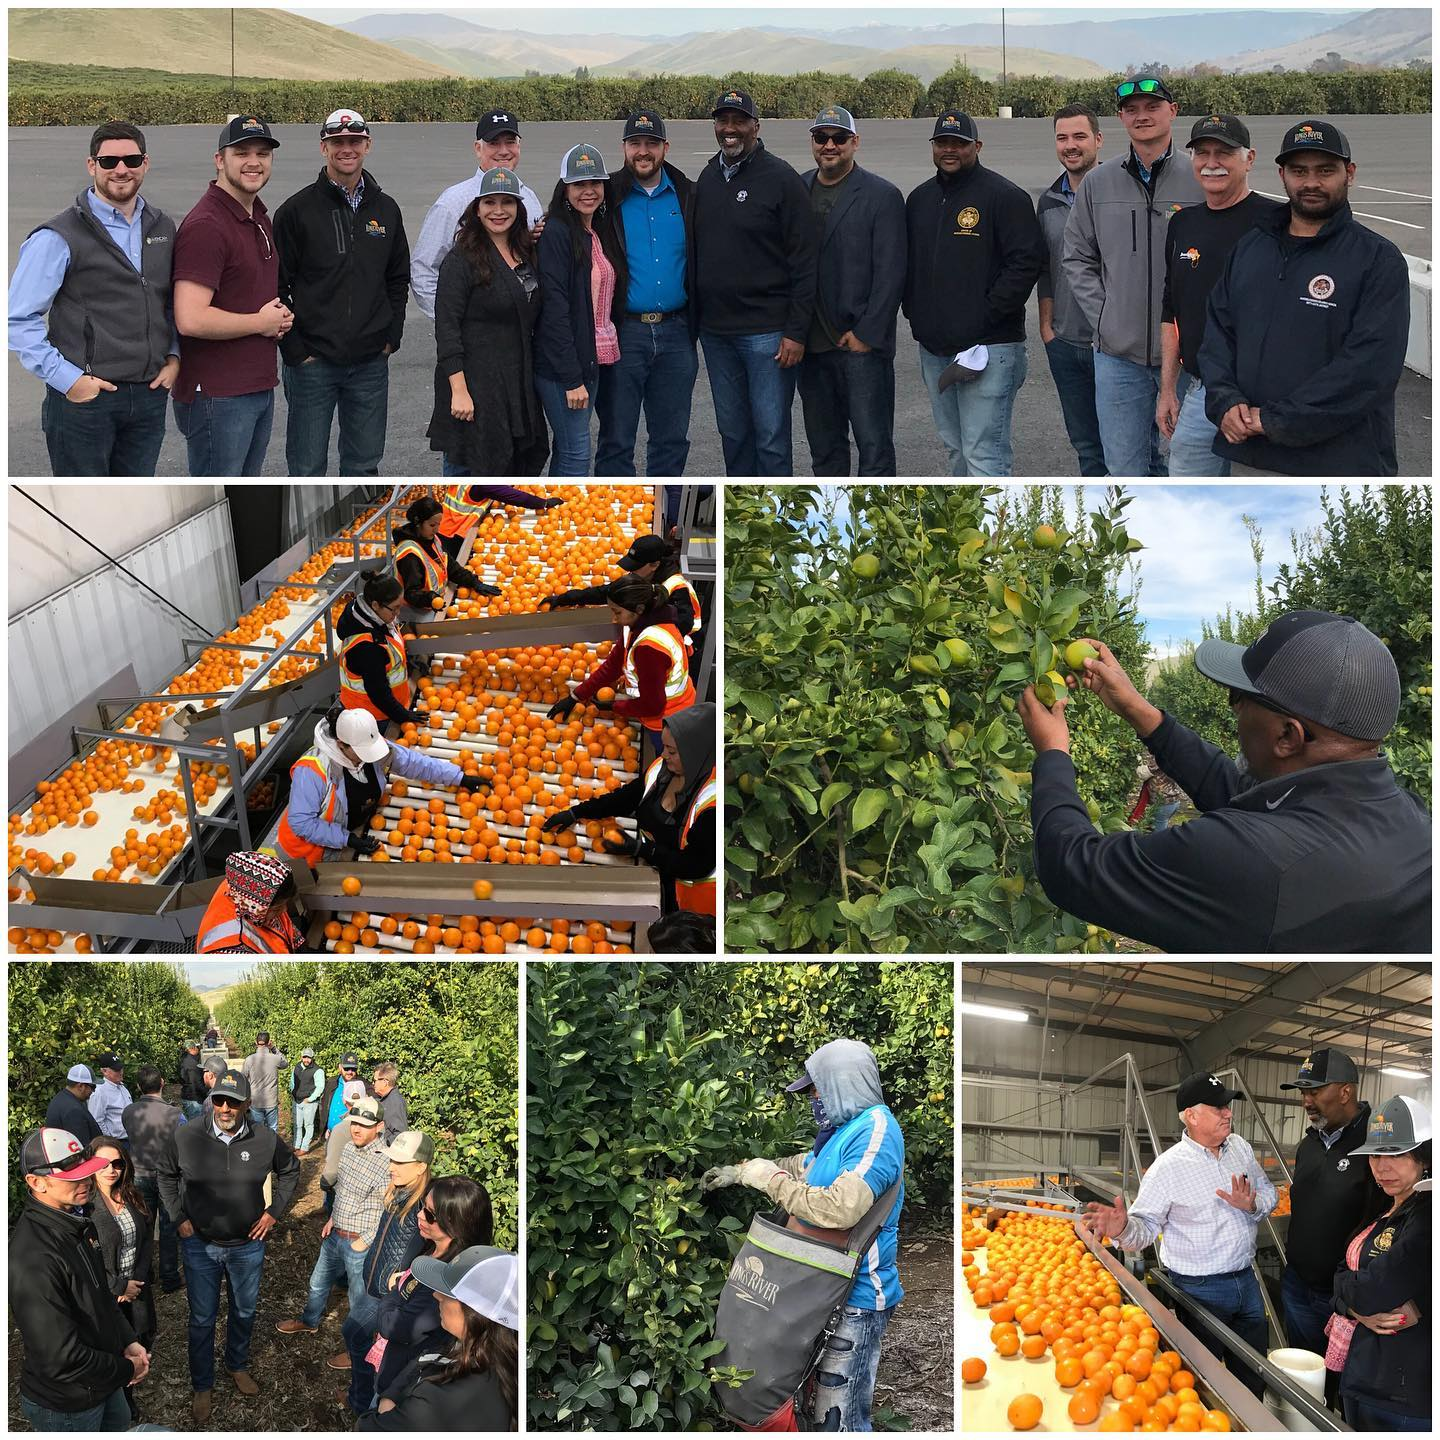 Our group also visited Kings River Packing in Sanger. The Hazelton family started growing oranges in 1857.  Now they farm over 3,000 acres, and pack over 8,000 acres for farmers in the Fresno region.  It's farms like this that help feed the world!